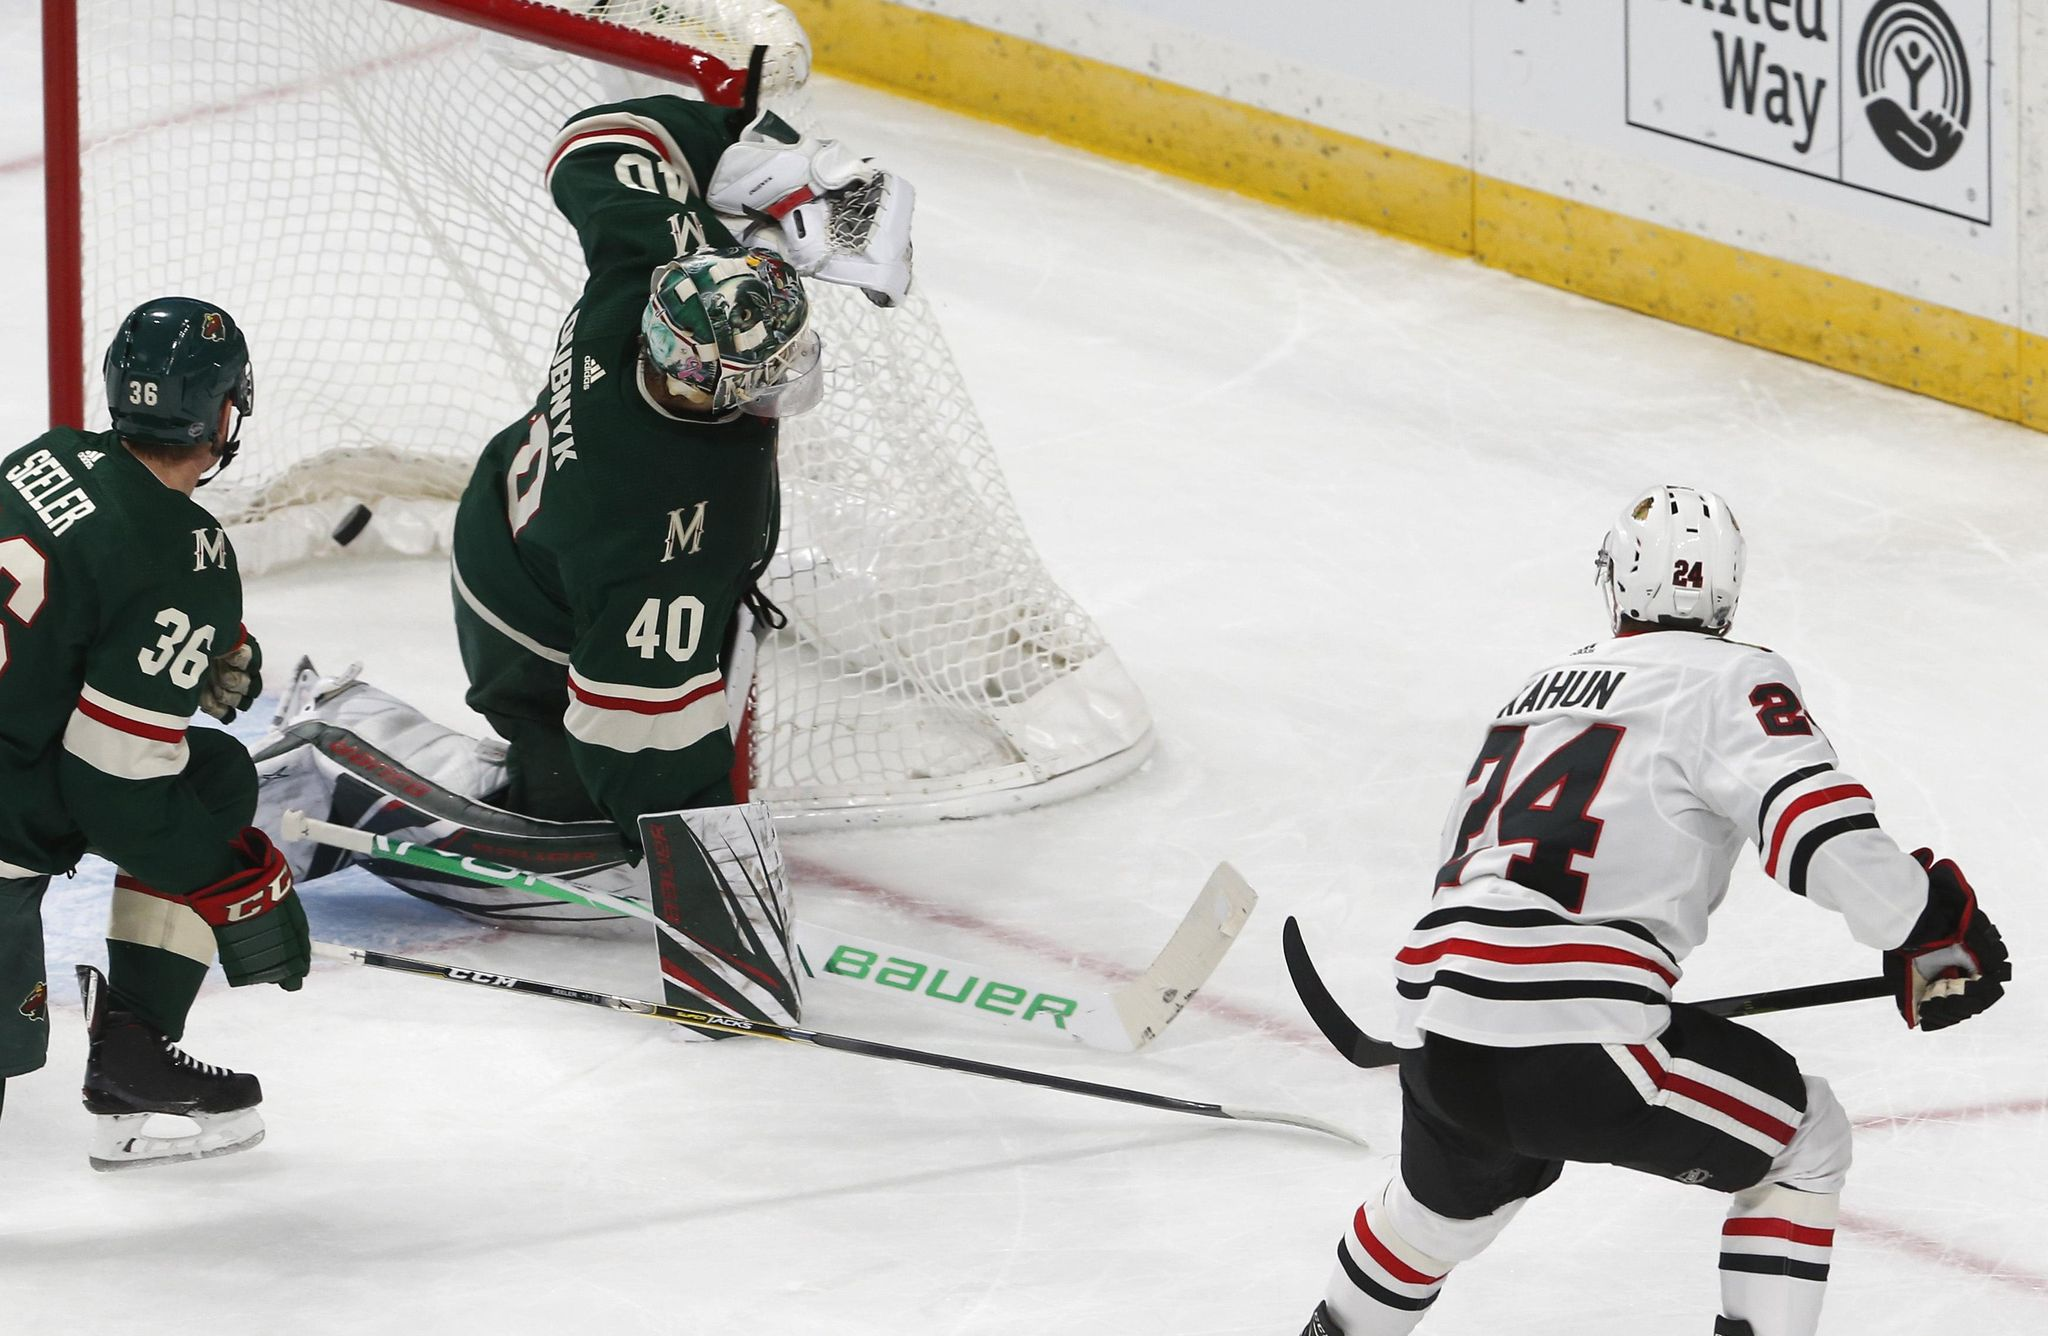 Blackhawks_wild_hockey_61028_s2048x1336